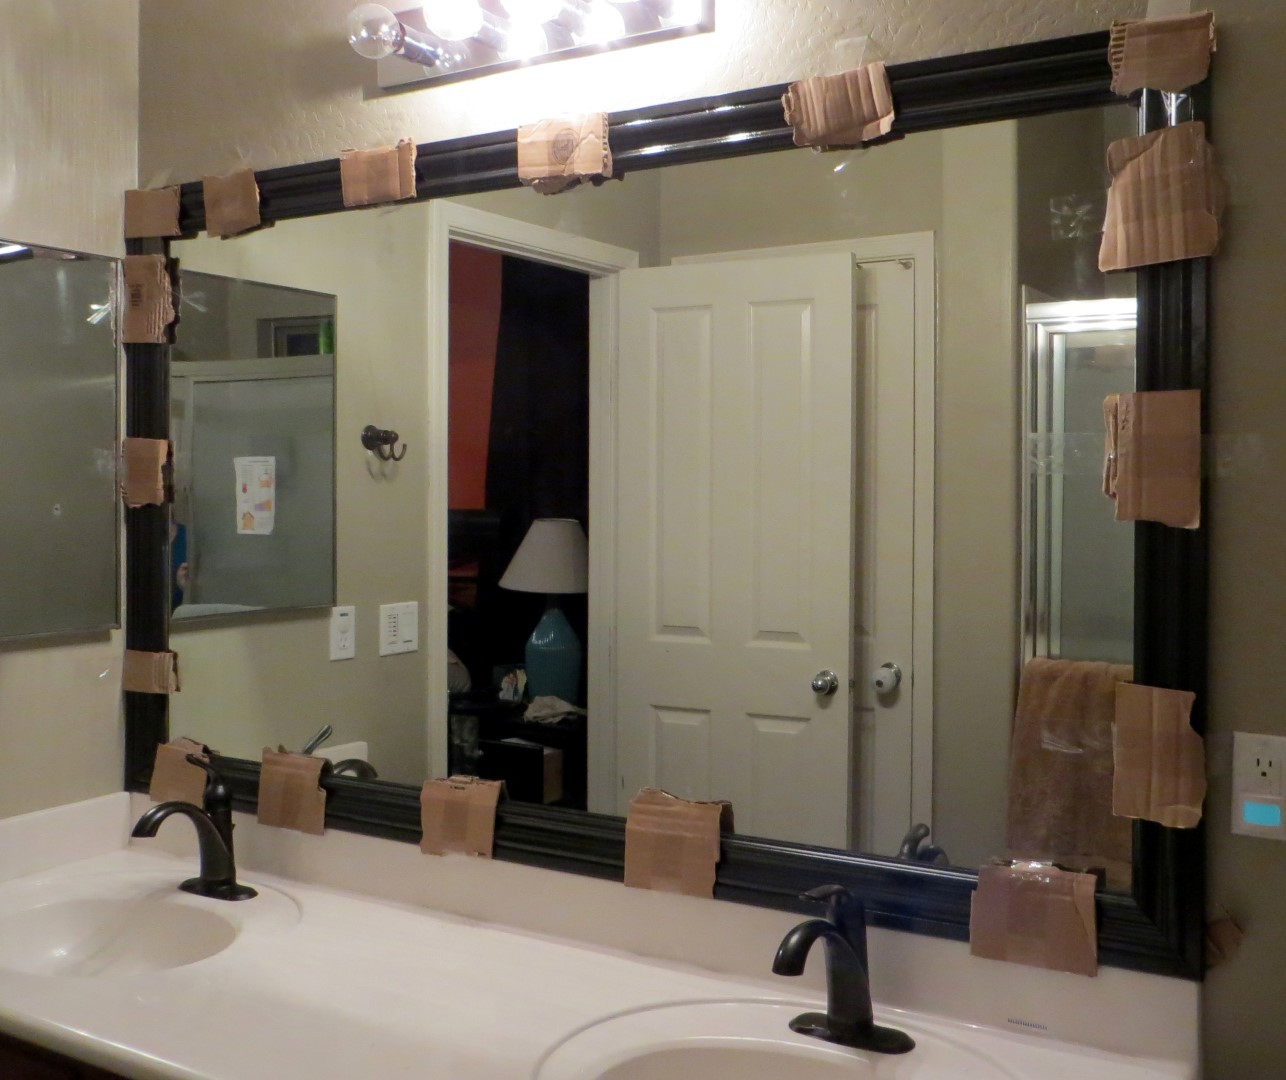 Frame a bathroom mirror with molding - Mirror Taping